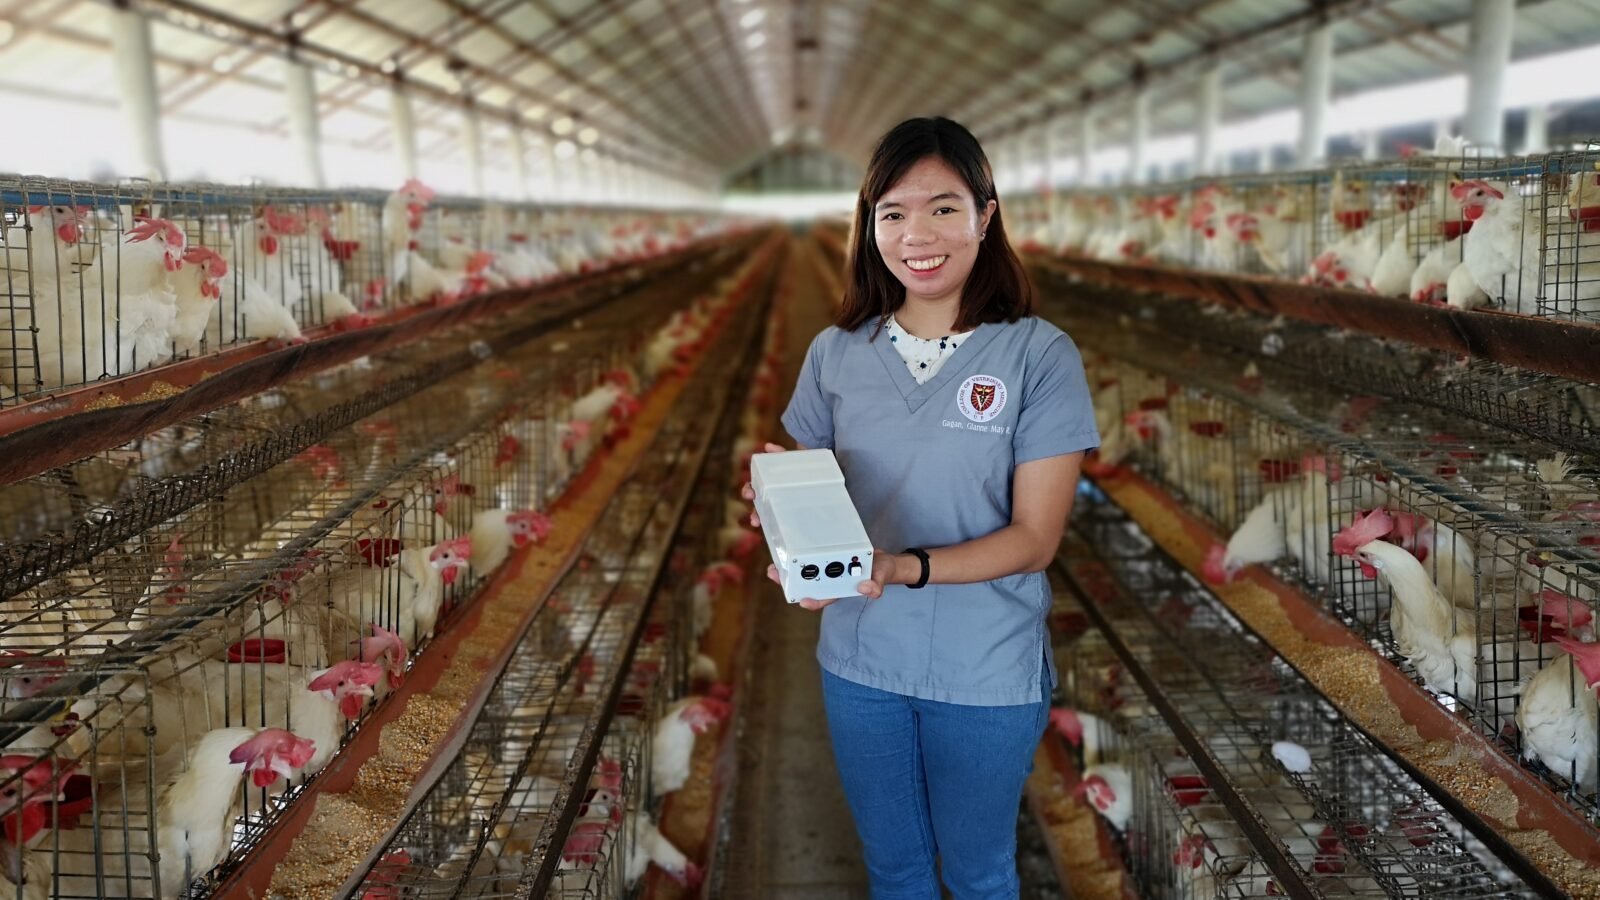 Newton Prize researcher demonstrates innovation in poultry farm in Philippines